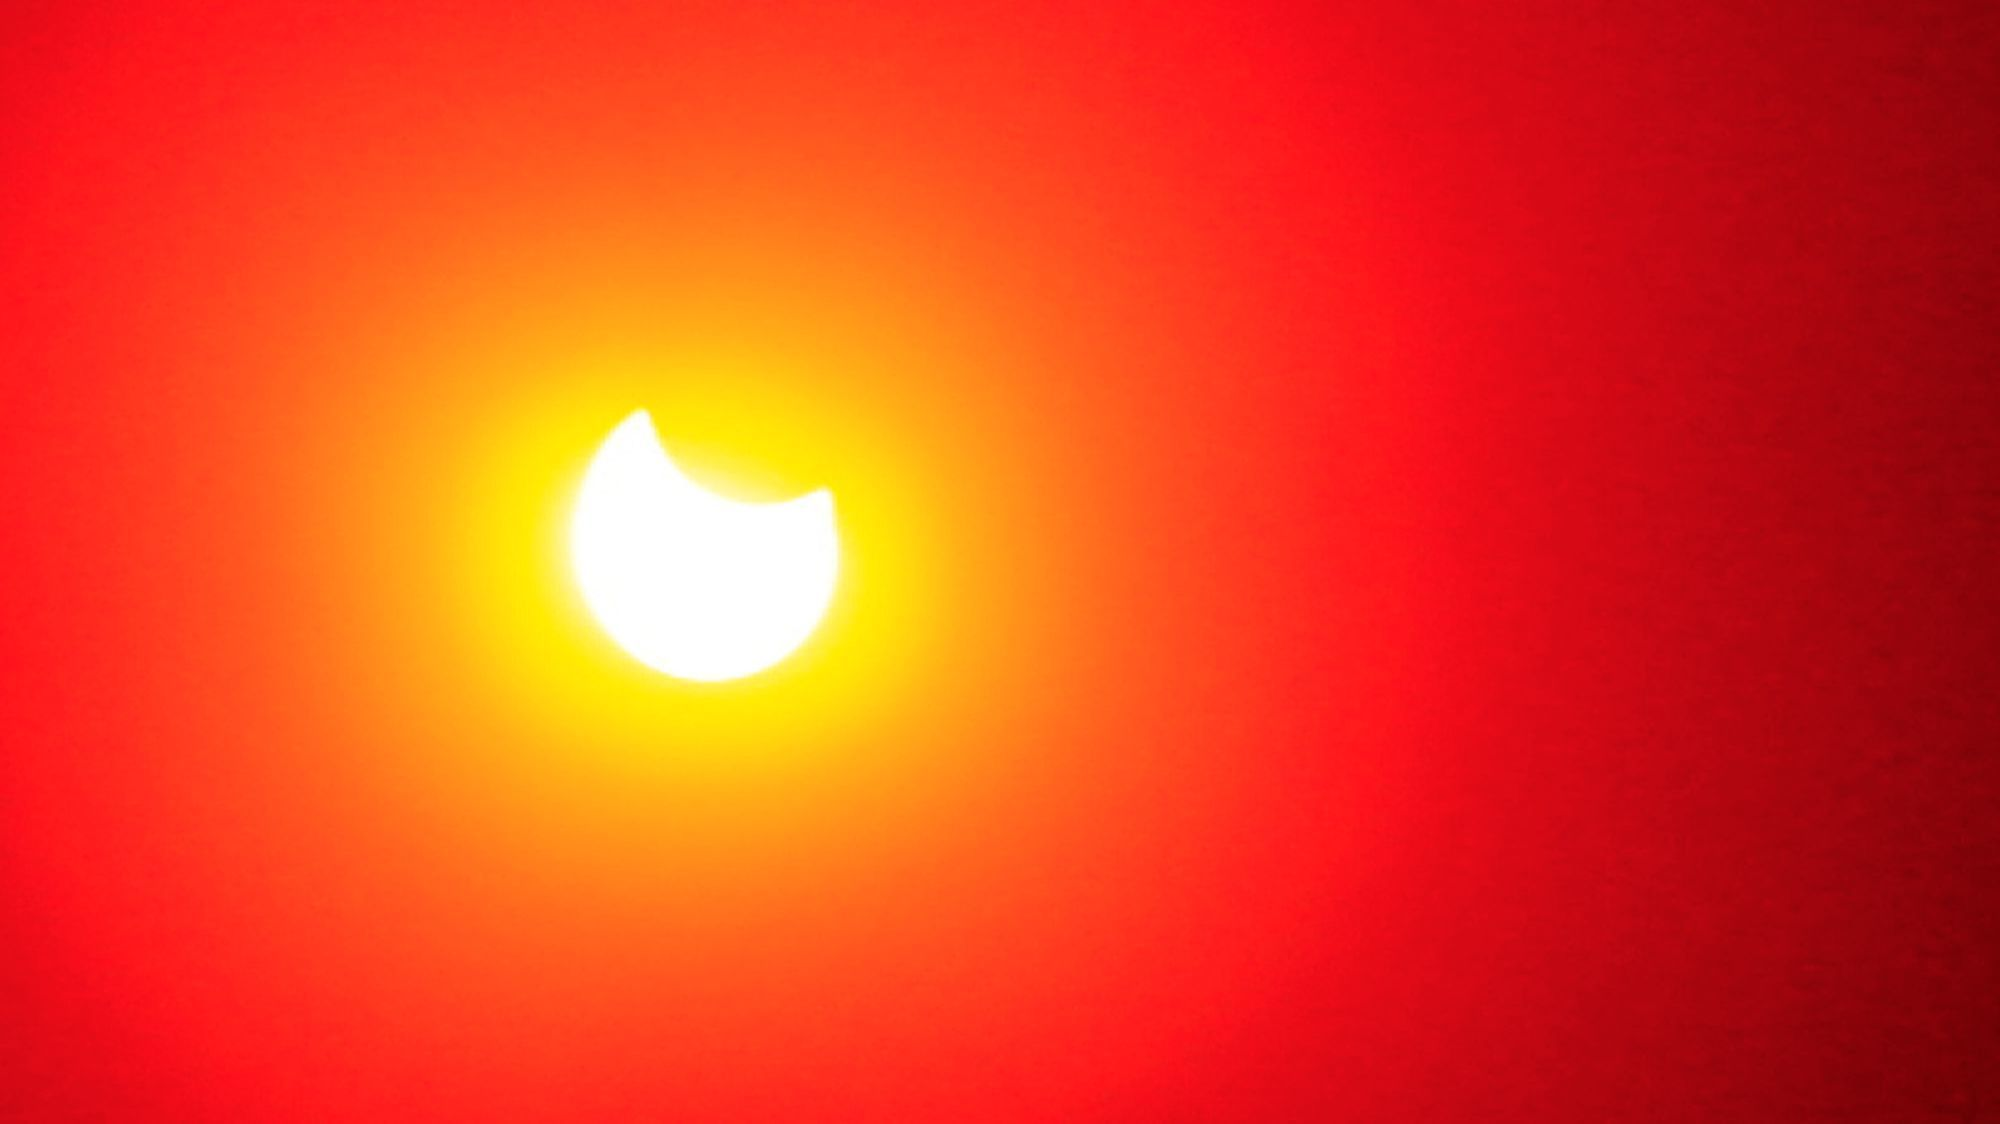 A partial eclipse of the sun viewed from the Los Angeles area in 2014.